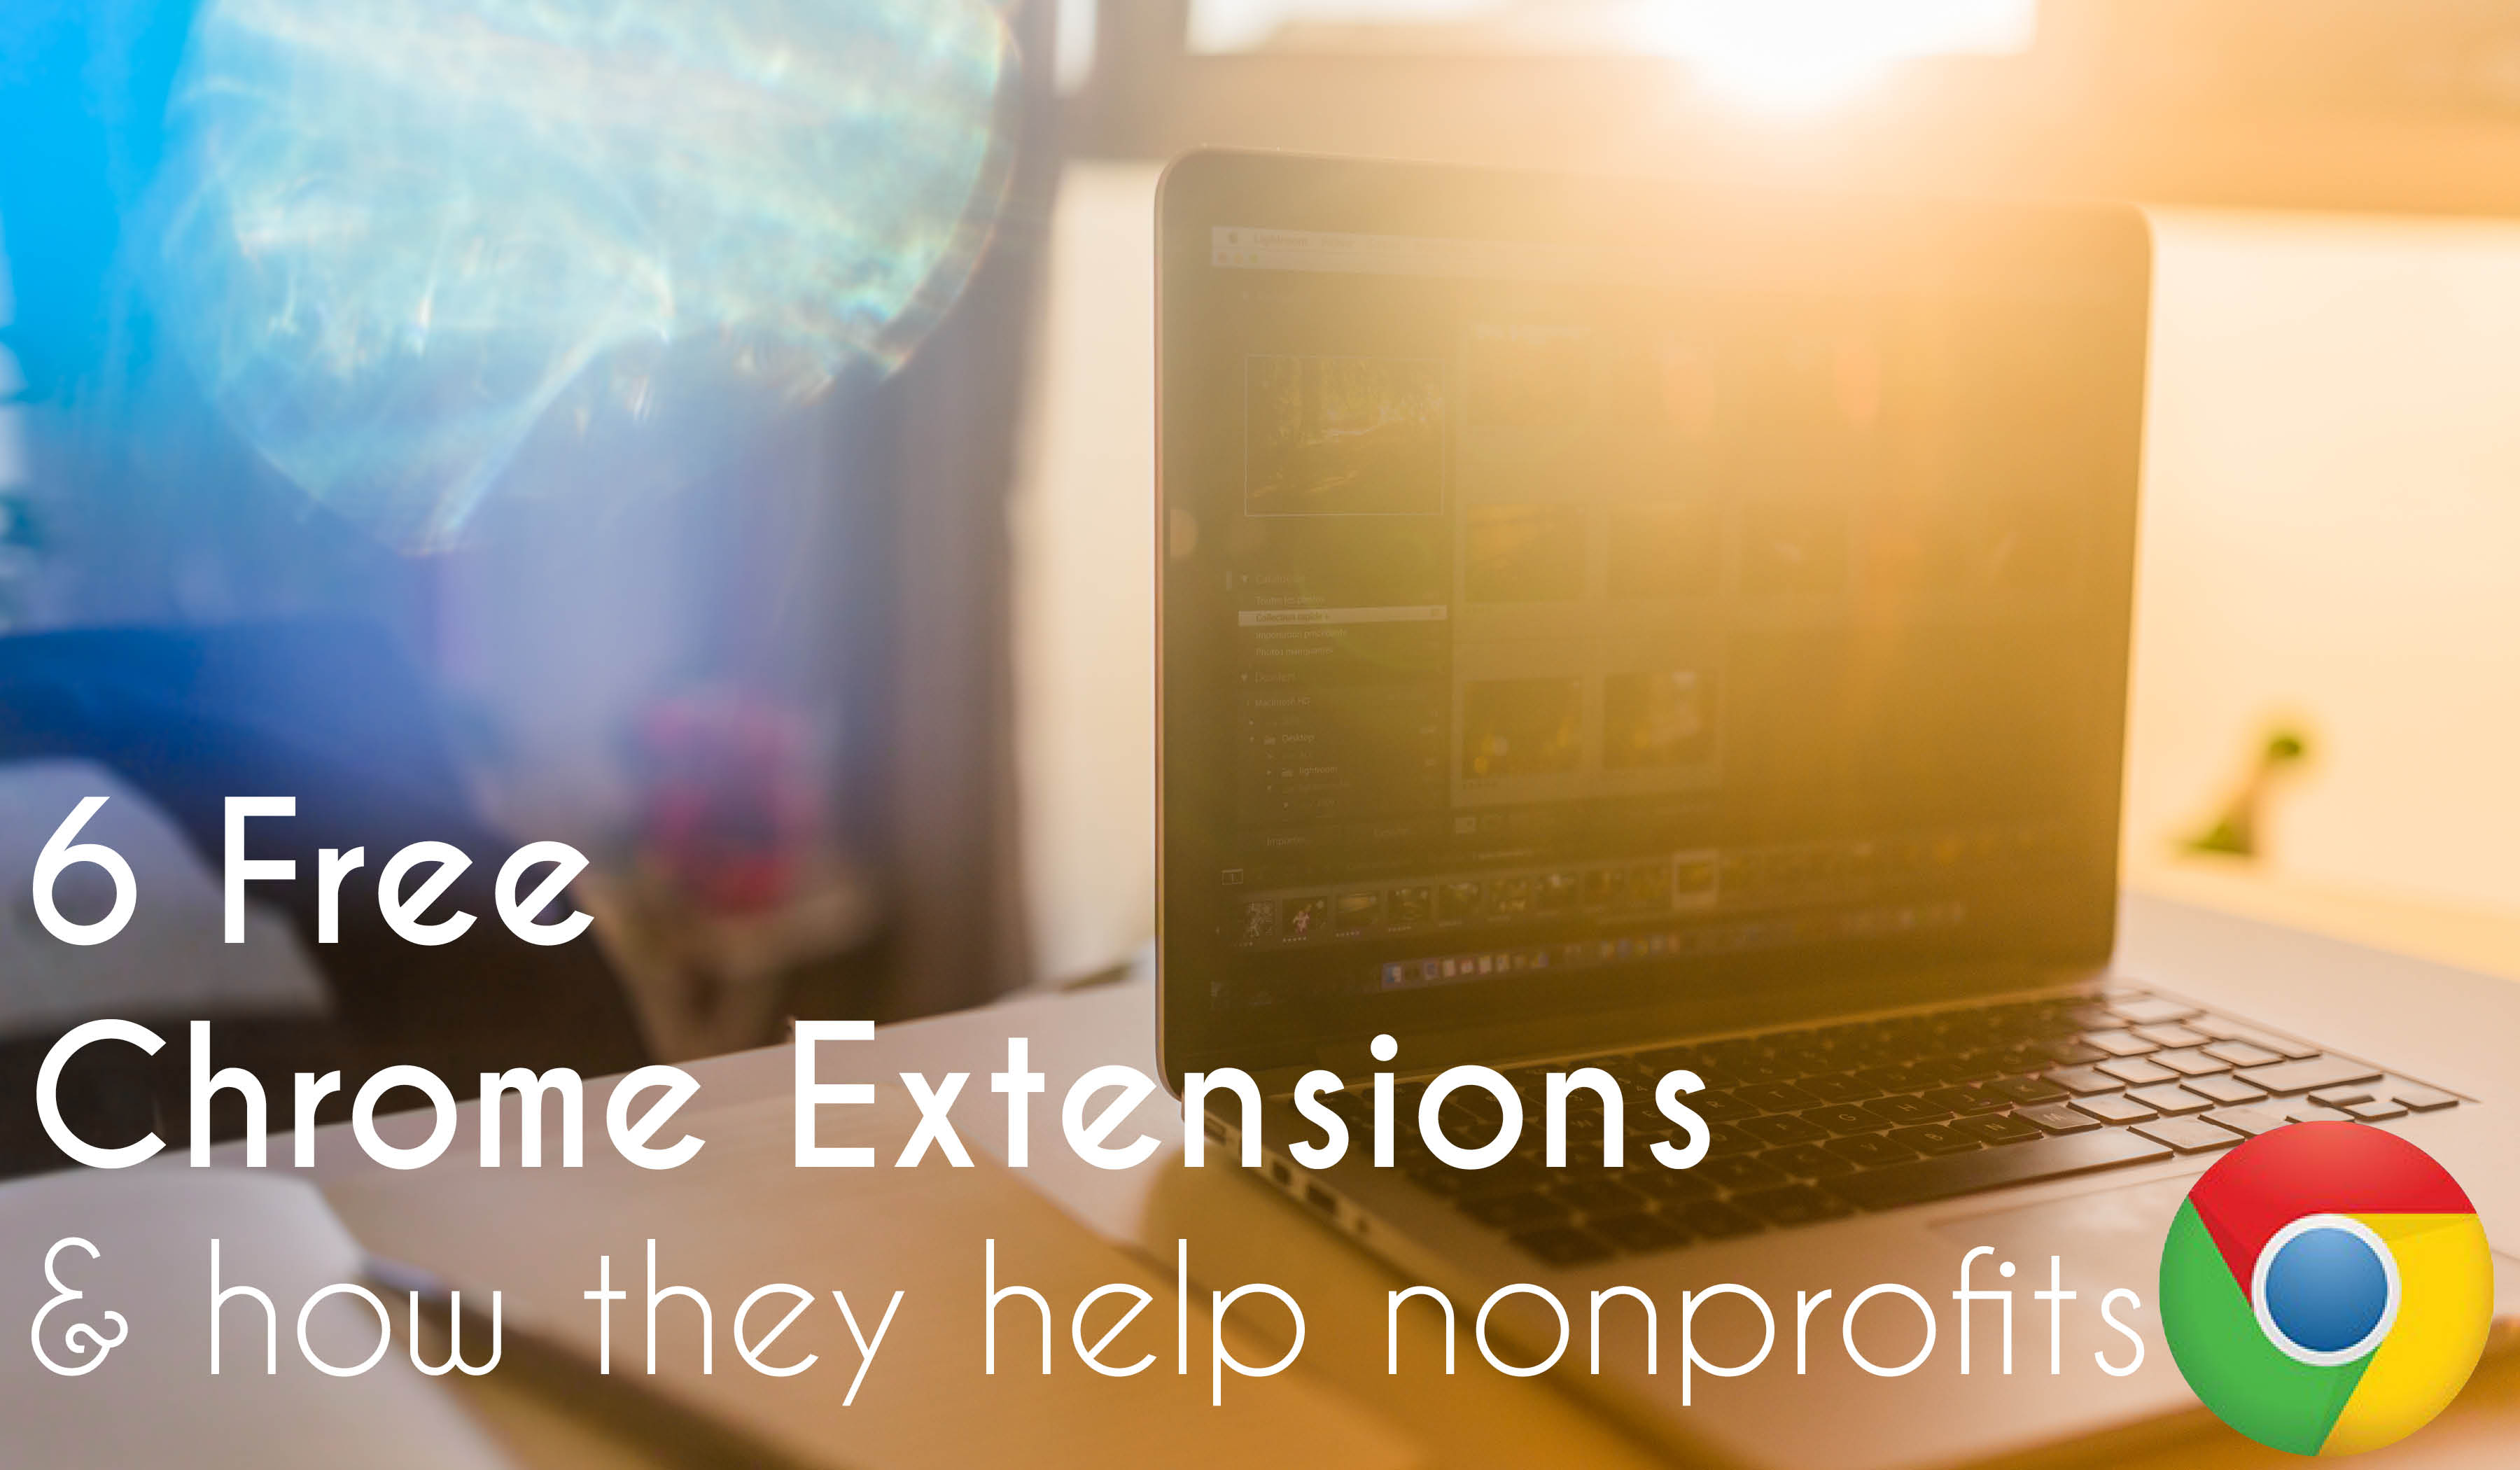 chrome-extensions-that-help-nonprofits